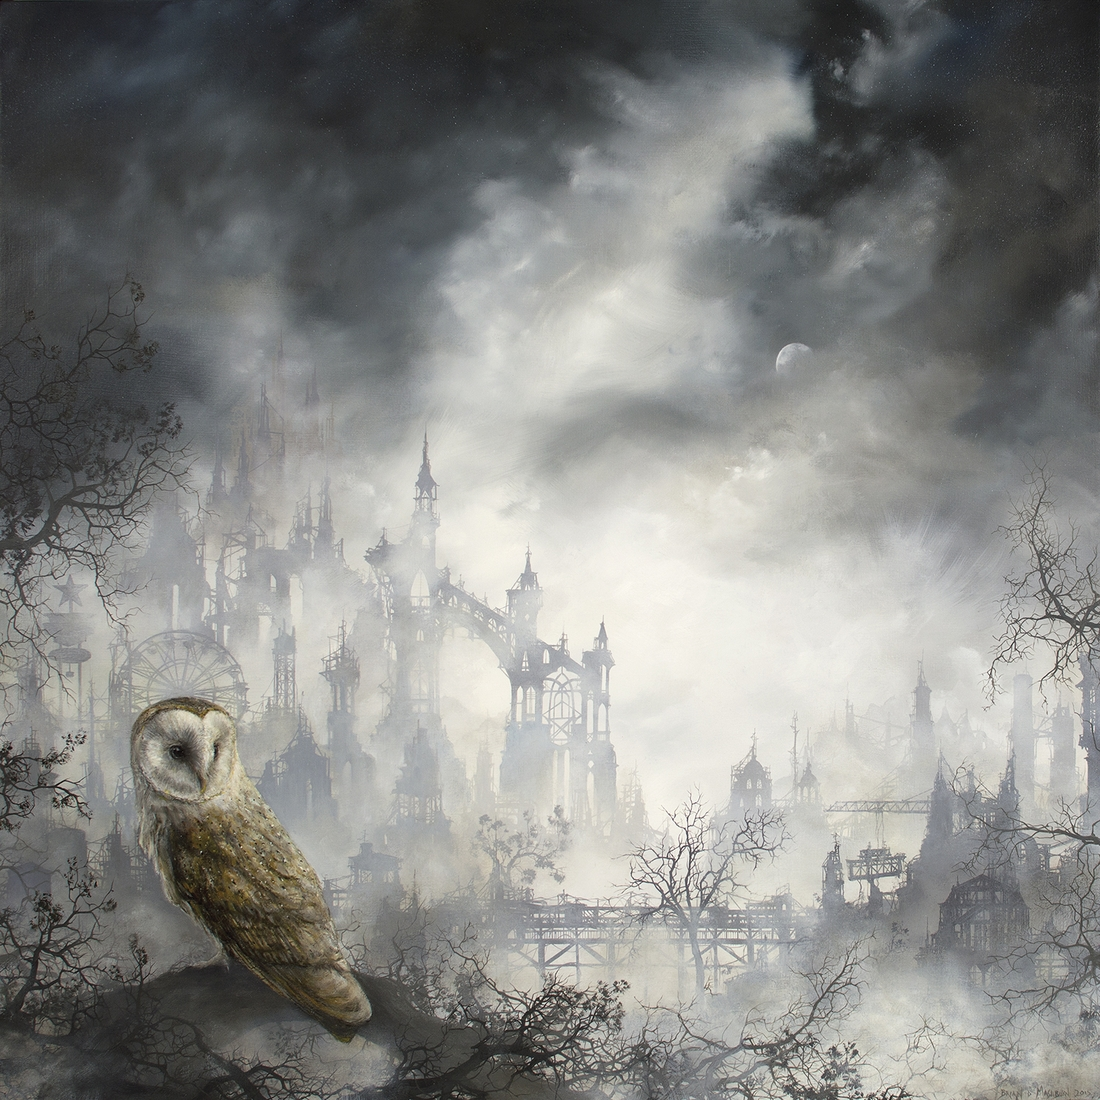 01-Barn-Owl-Brian-Mashburn-Architecture-in-Paintings-of-Urban-and-Industrial-Landscapes-www-designstack-co